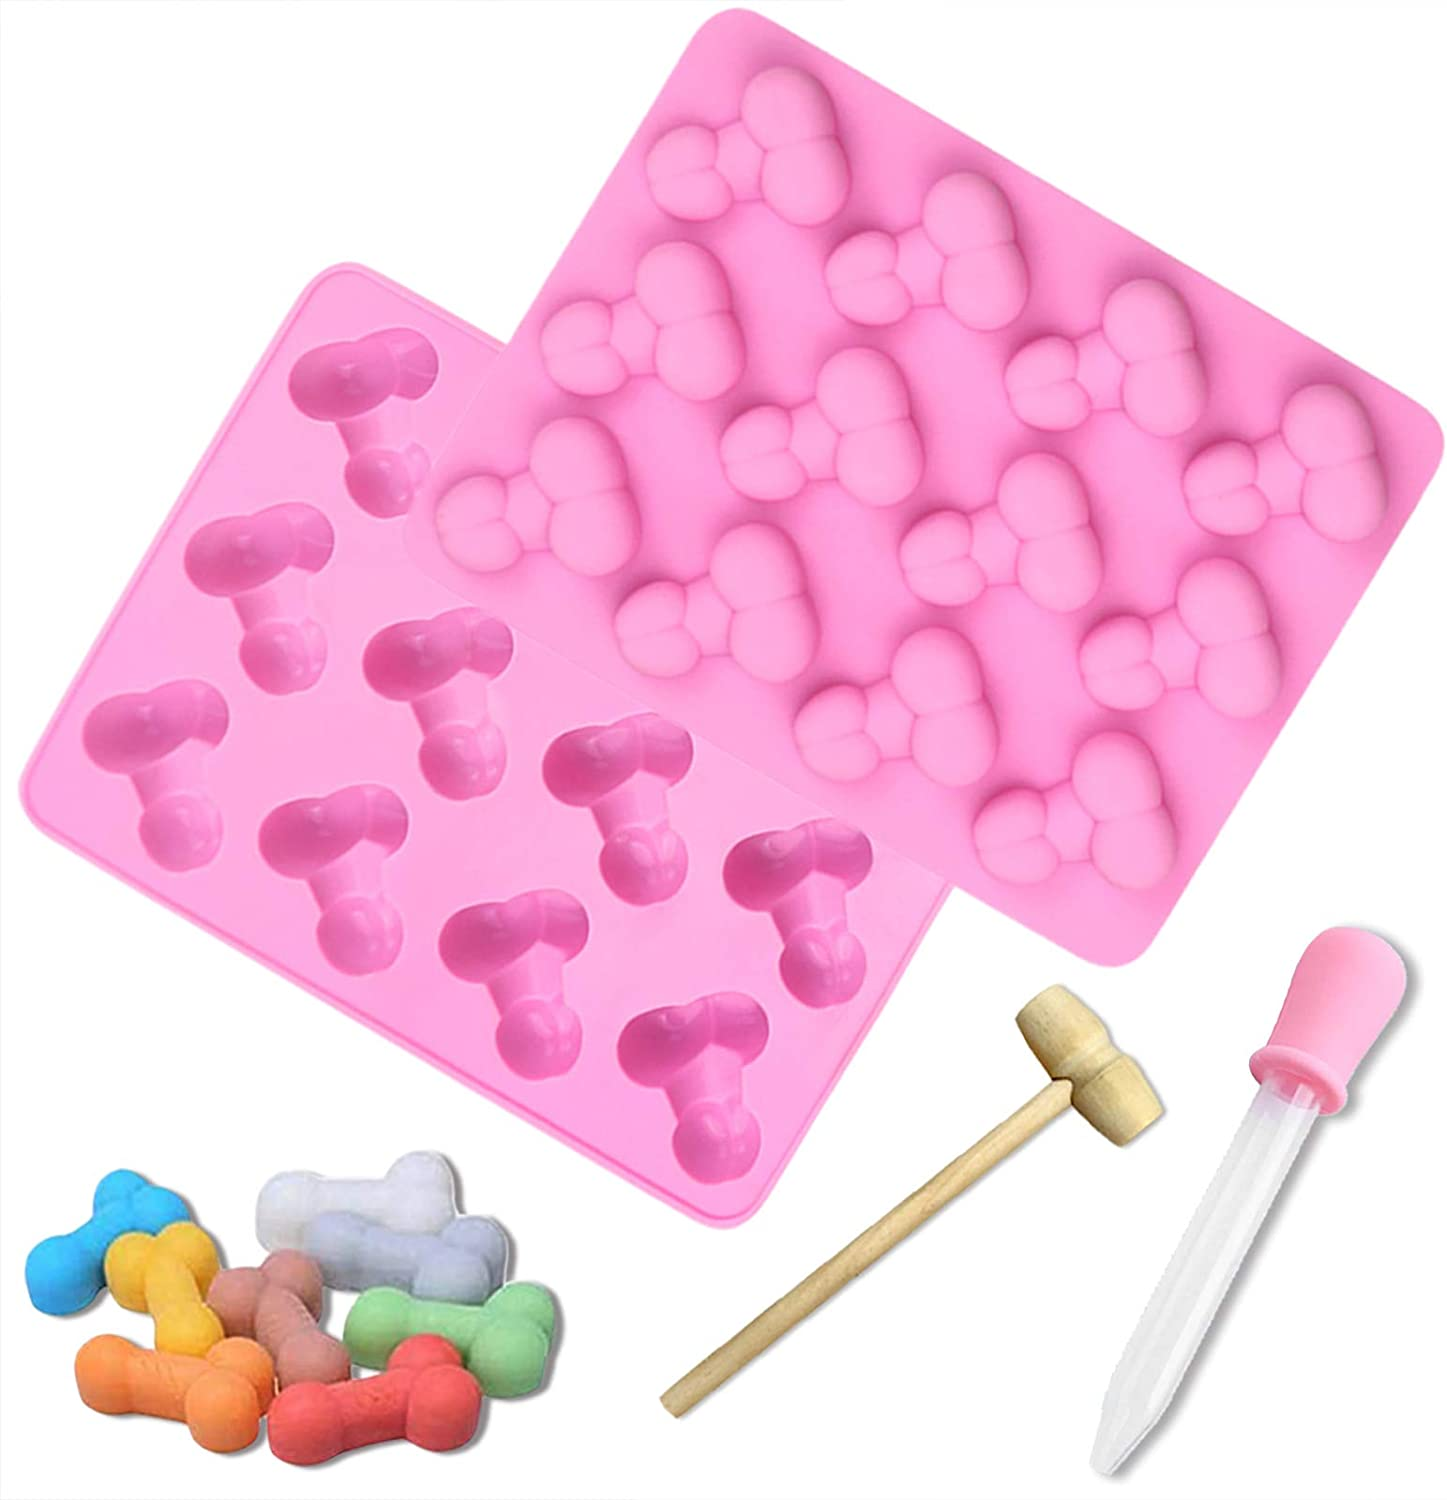 2PCS Silicone Mold Funny Shape Bakeware Molds,Chocolate Mold with Wooden Hammers and Droppers,Funny 12-Cavity Candy Mold Ice Mold Soap Mold for Single Party Birthday ,Reusable Silicone Mold. (Pink)